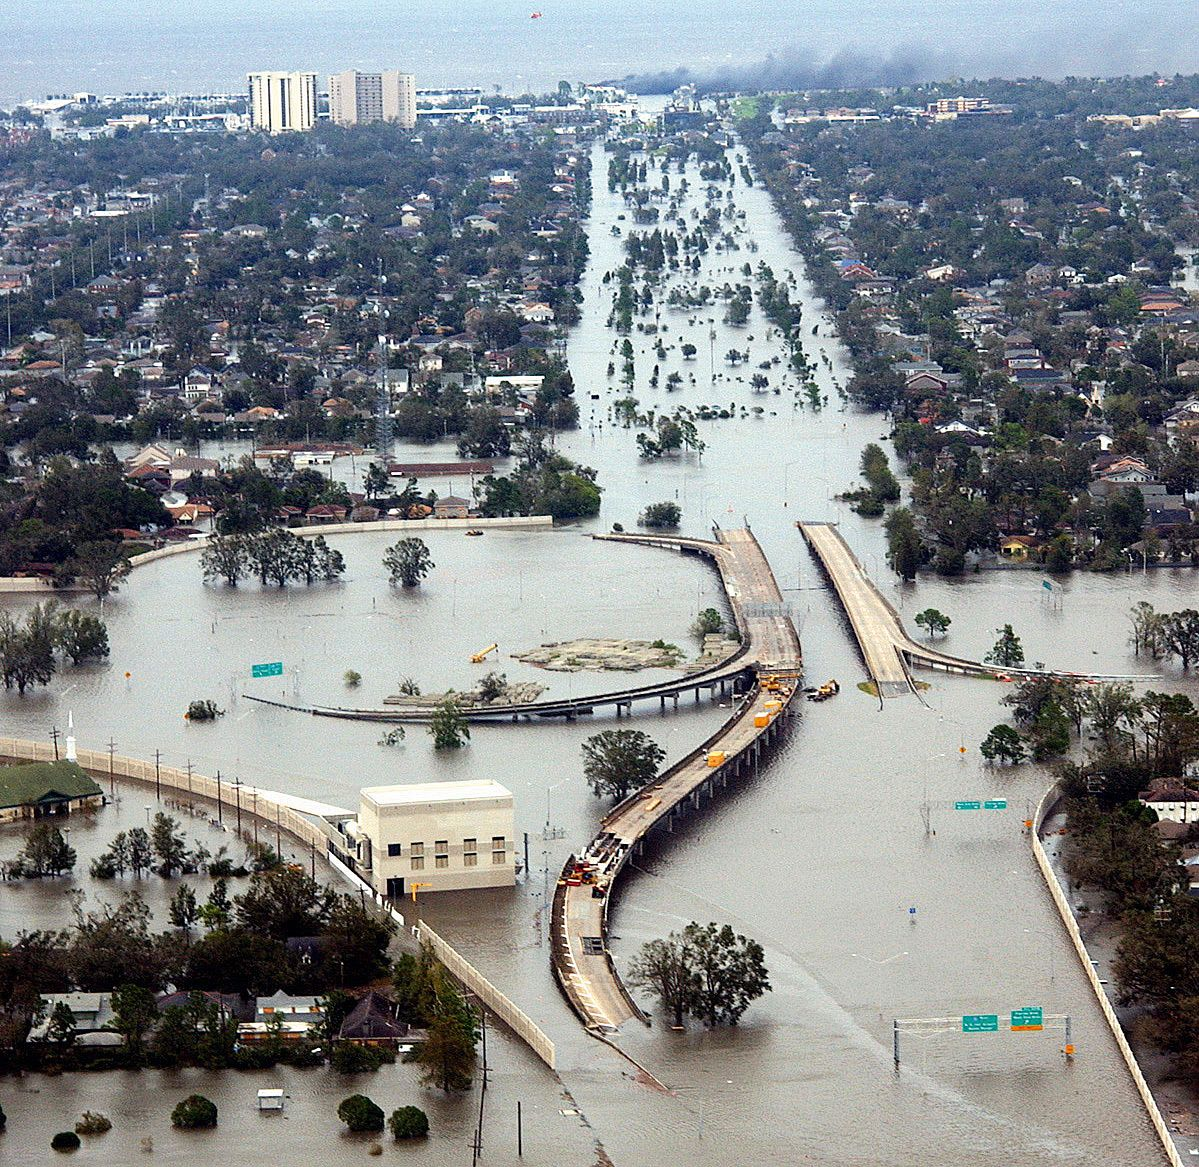 New Orleans after Hurricane Katrina, 2005.